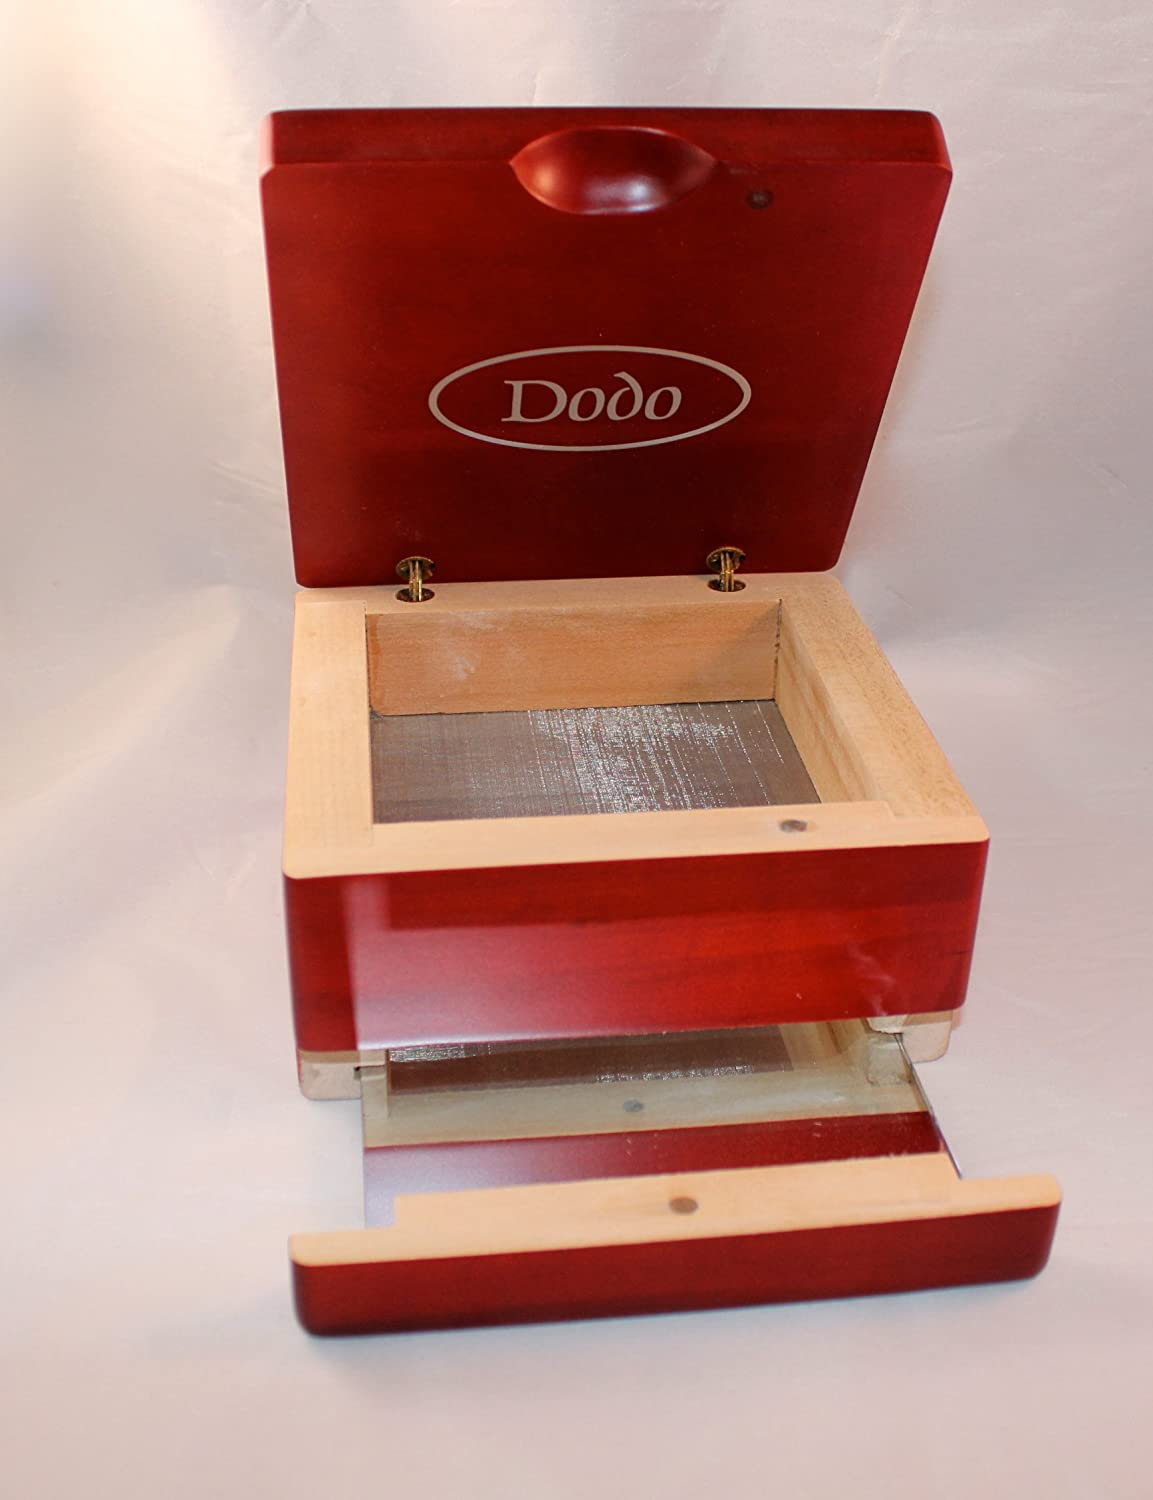 Amazon.com Dodo Pollen Sifter Shaker Cherry Wood Box 6  x 6  x 3.5  with Magnetic Lid u0026 Mirror Tray Home u0026 Kitchen & Amazon.com: Dodo Pollen Sifter Shaker Cherry Wood Box 6